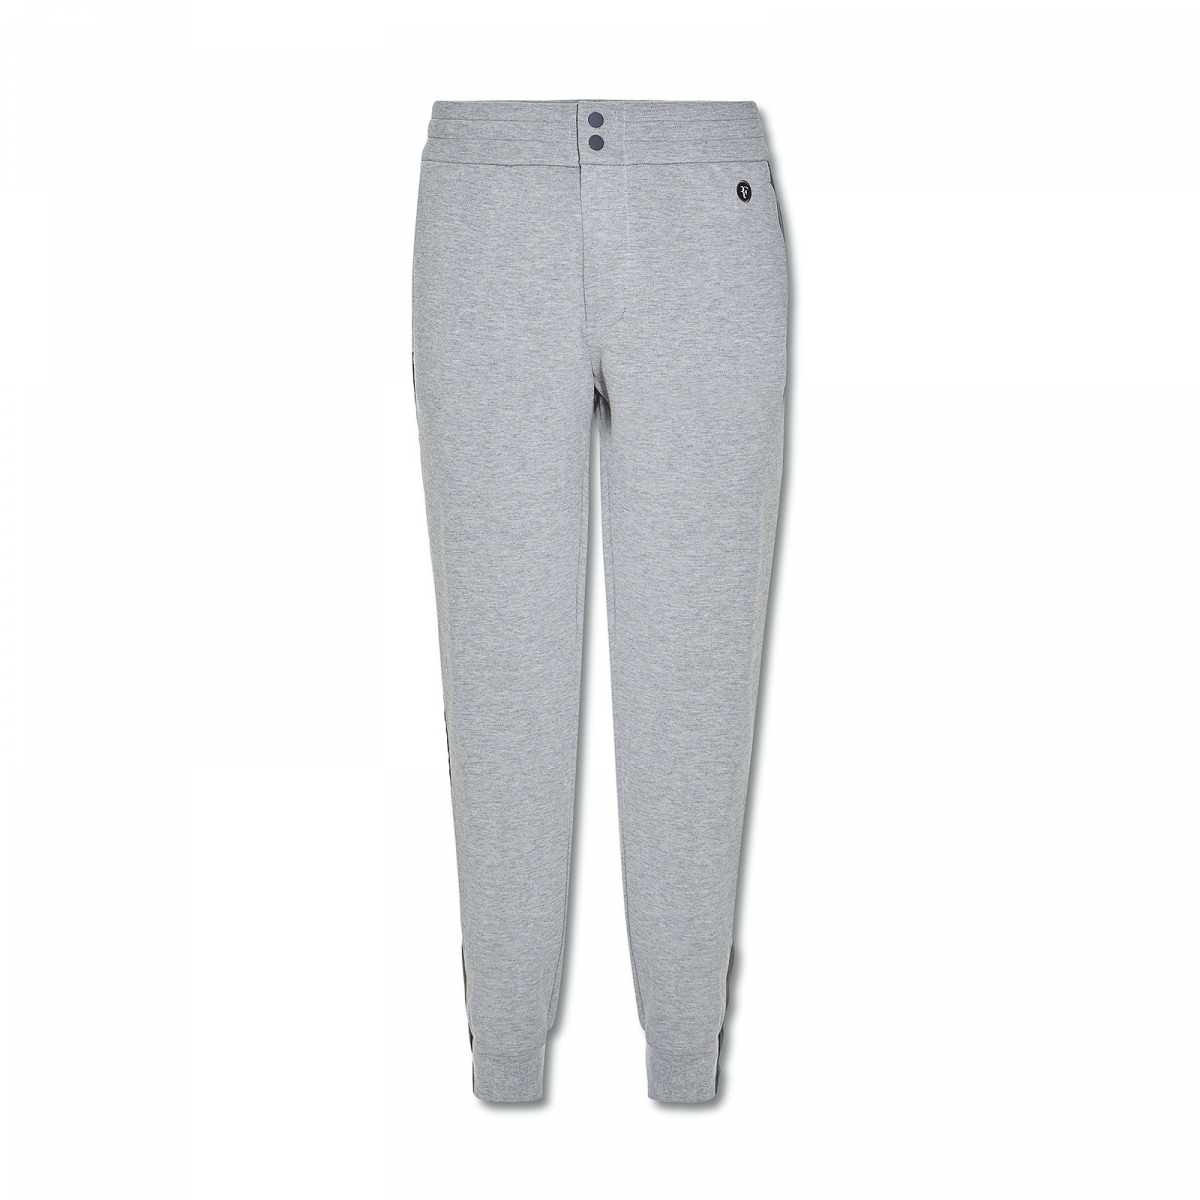 Lyst - Nike Roger Federer X Court Jogger Pants in Gray for Men 5afc1a225